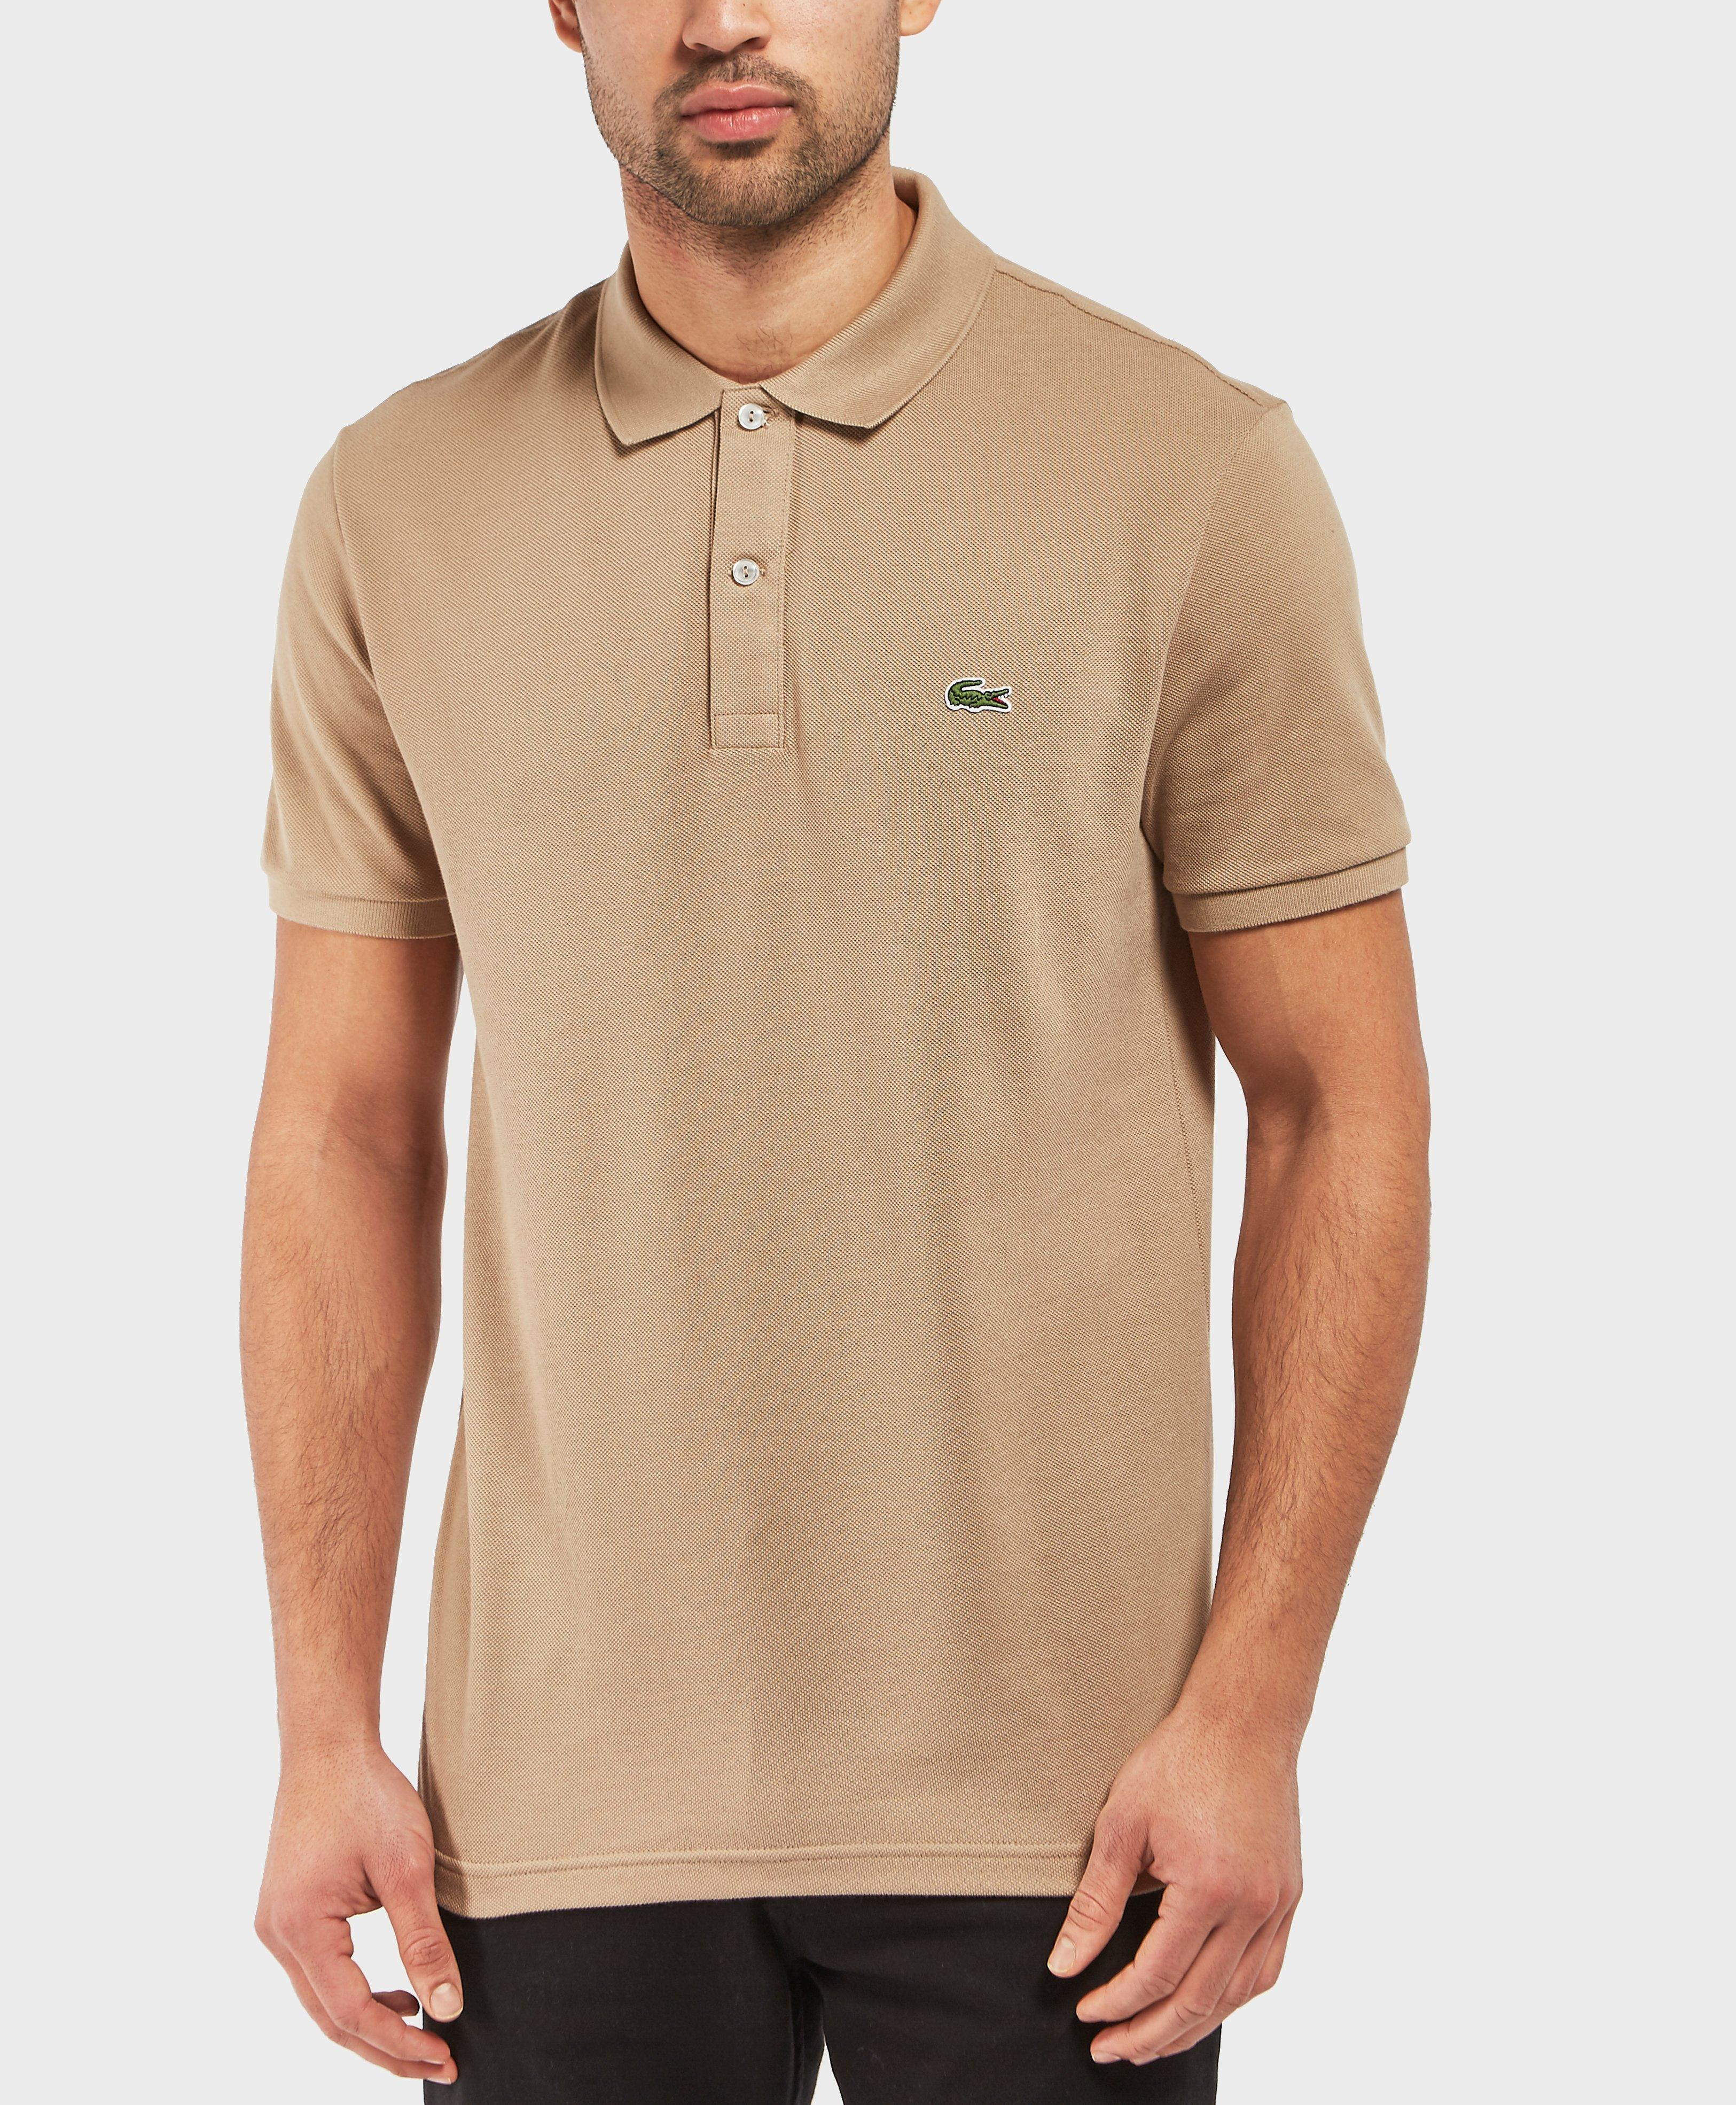 956e11d2921522 Lyst - Lacoste 1212 Slim Short Sleeve Polo Shirt in Natural for Men